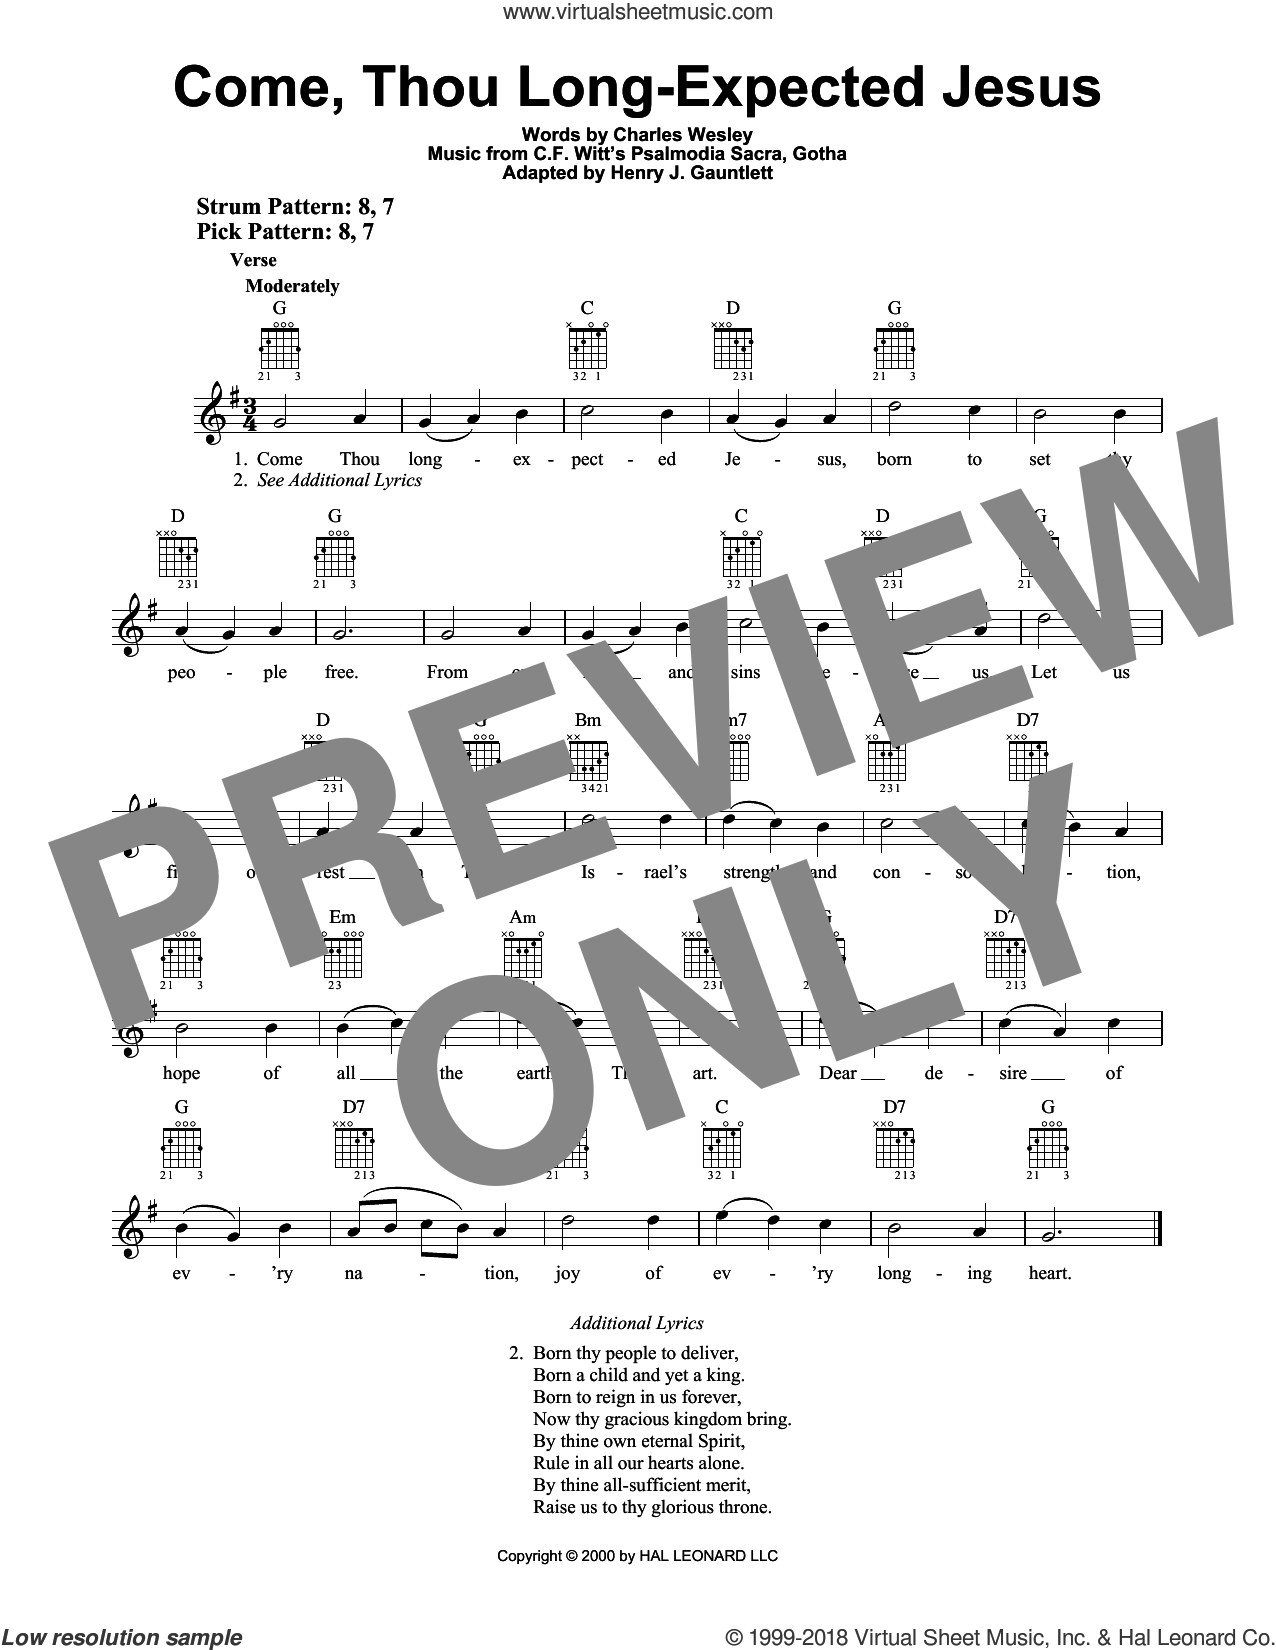 Come, Thou Long-Expected Jesus sheet music for guitar solo (chords) by C.F. Witt, Charles Wesley and Henry Gauntlett, easy guitar (chords)